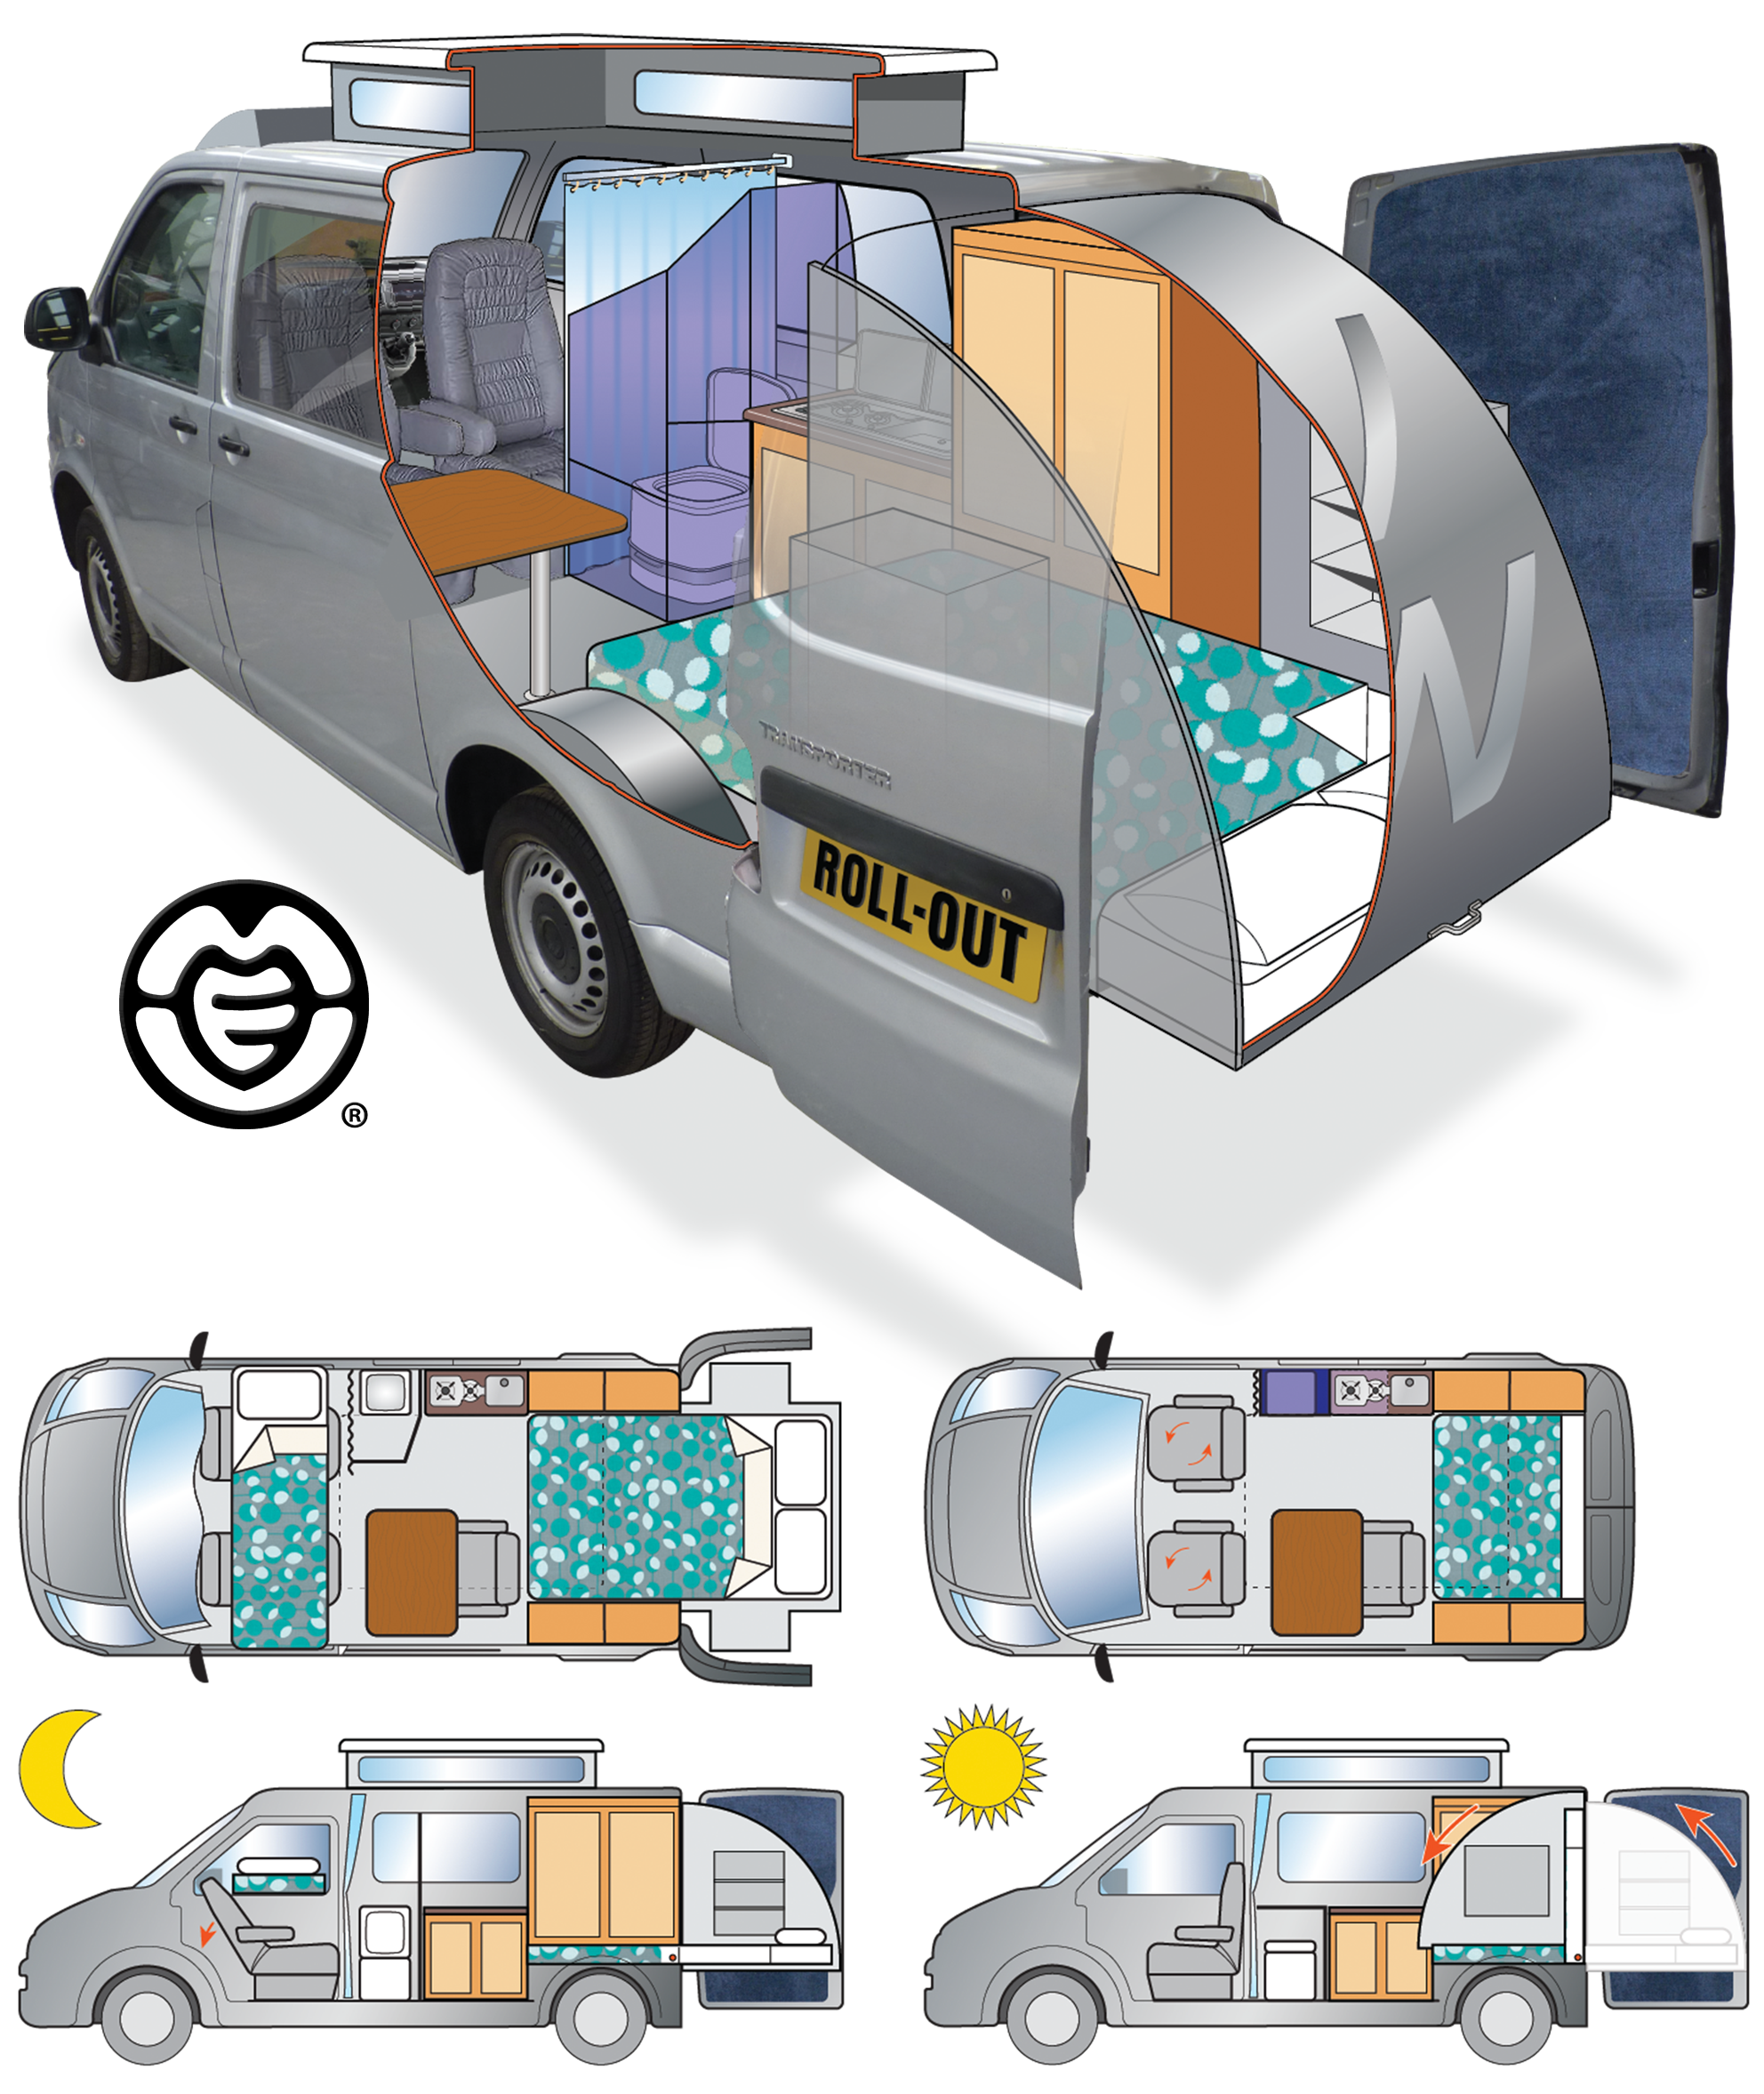 Camper Van conversion illustration